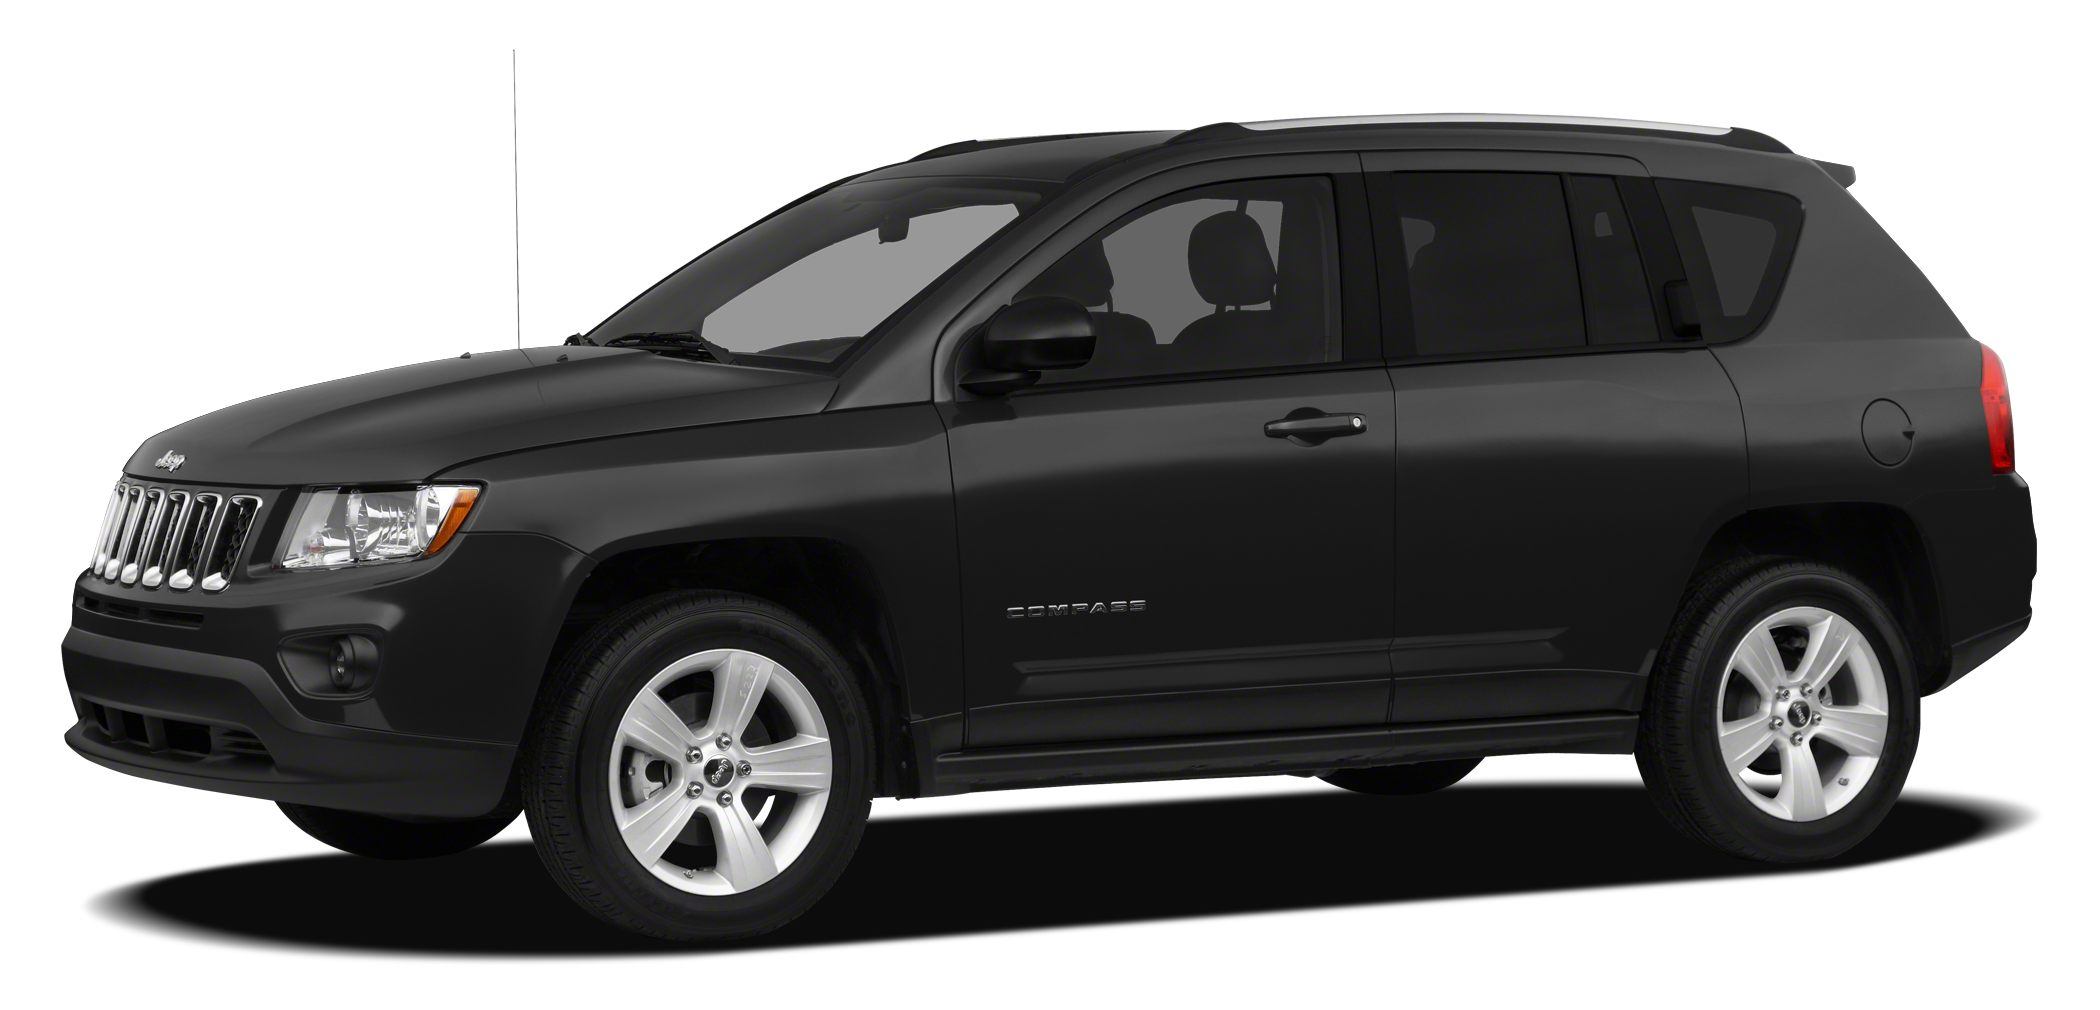 2012 Jeep Compass Limited Here at Lake Keowee Ford our customers come first and our prices will no